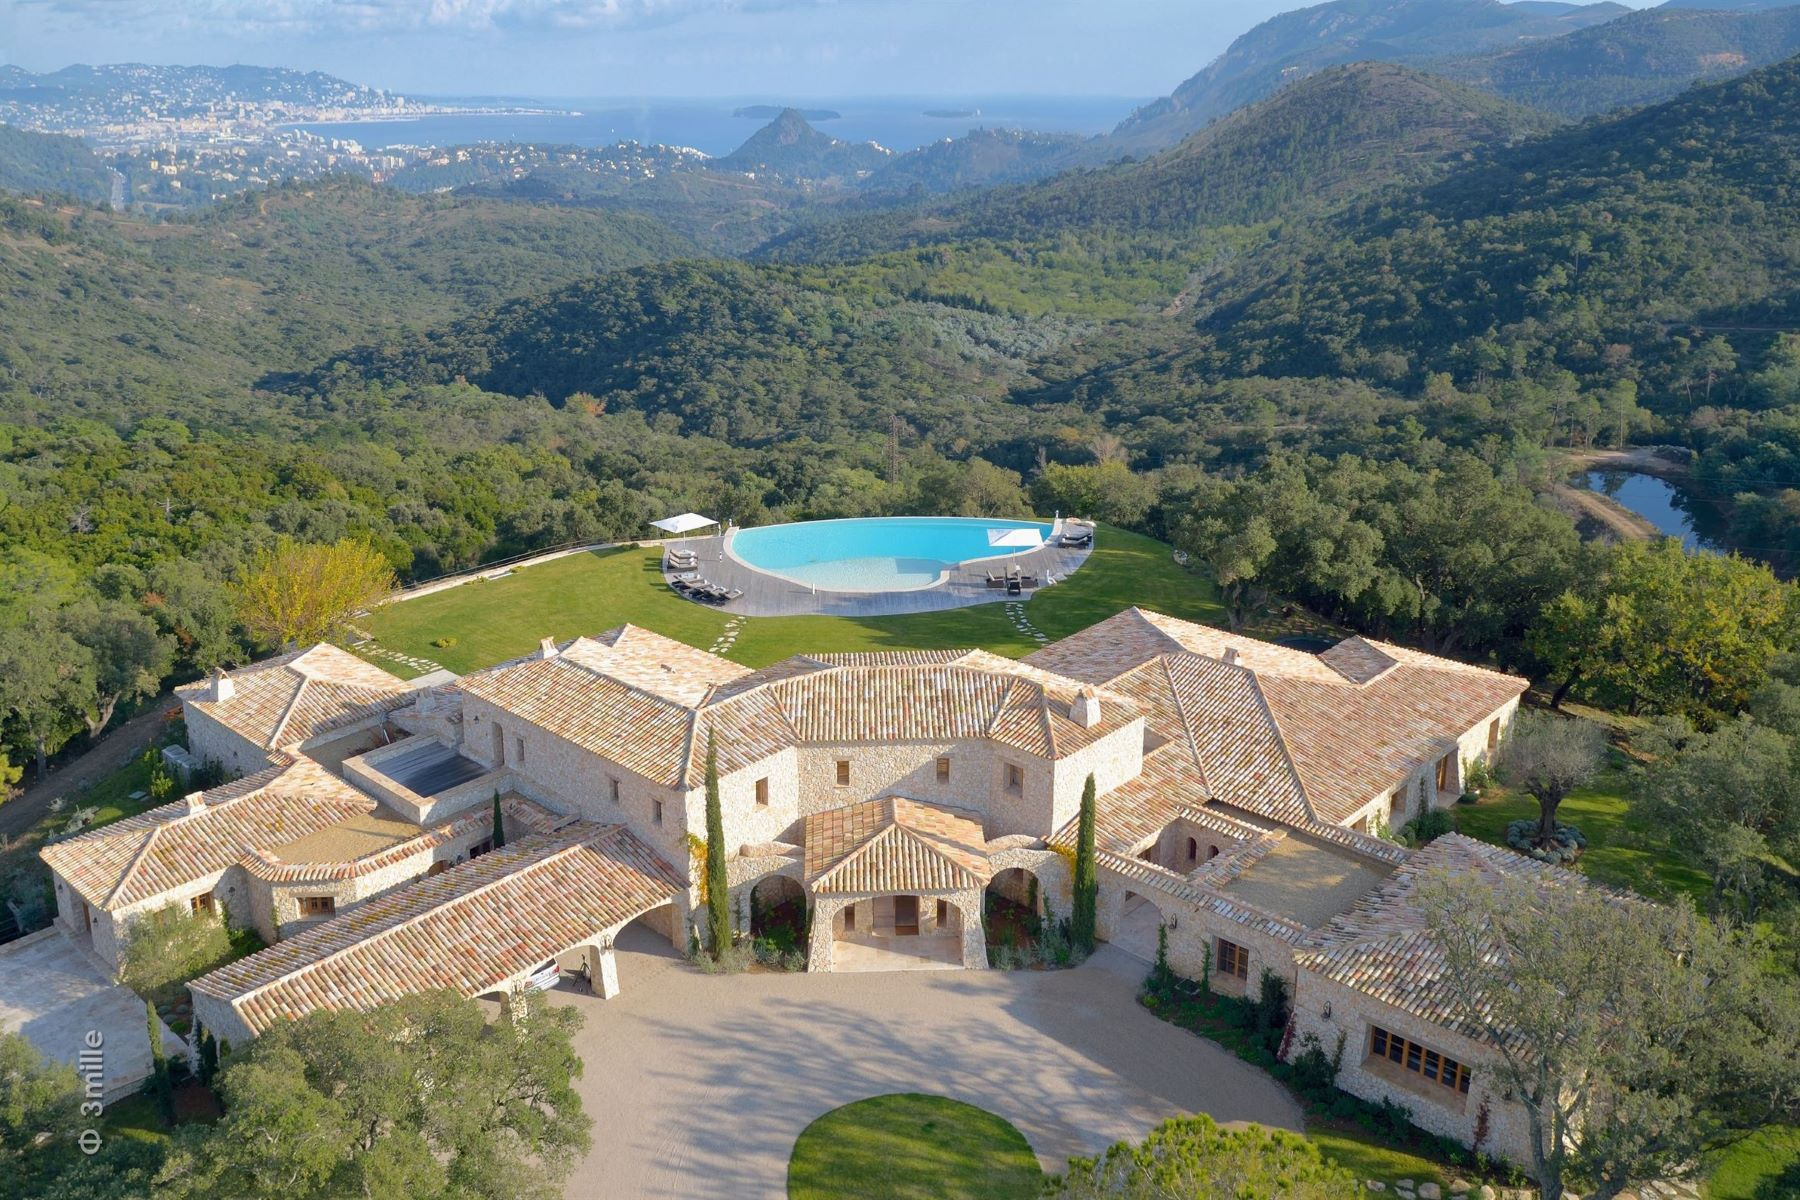 Single Family Homes por un Venta en Magnificent provencal domain with views over the bay of Cannes - luxury estate Les Adrets De L Esterel, Provincia - Alpes - Costa Azul 83600 Francia